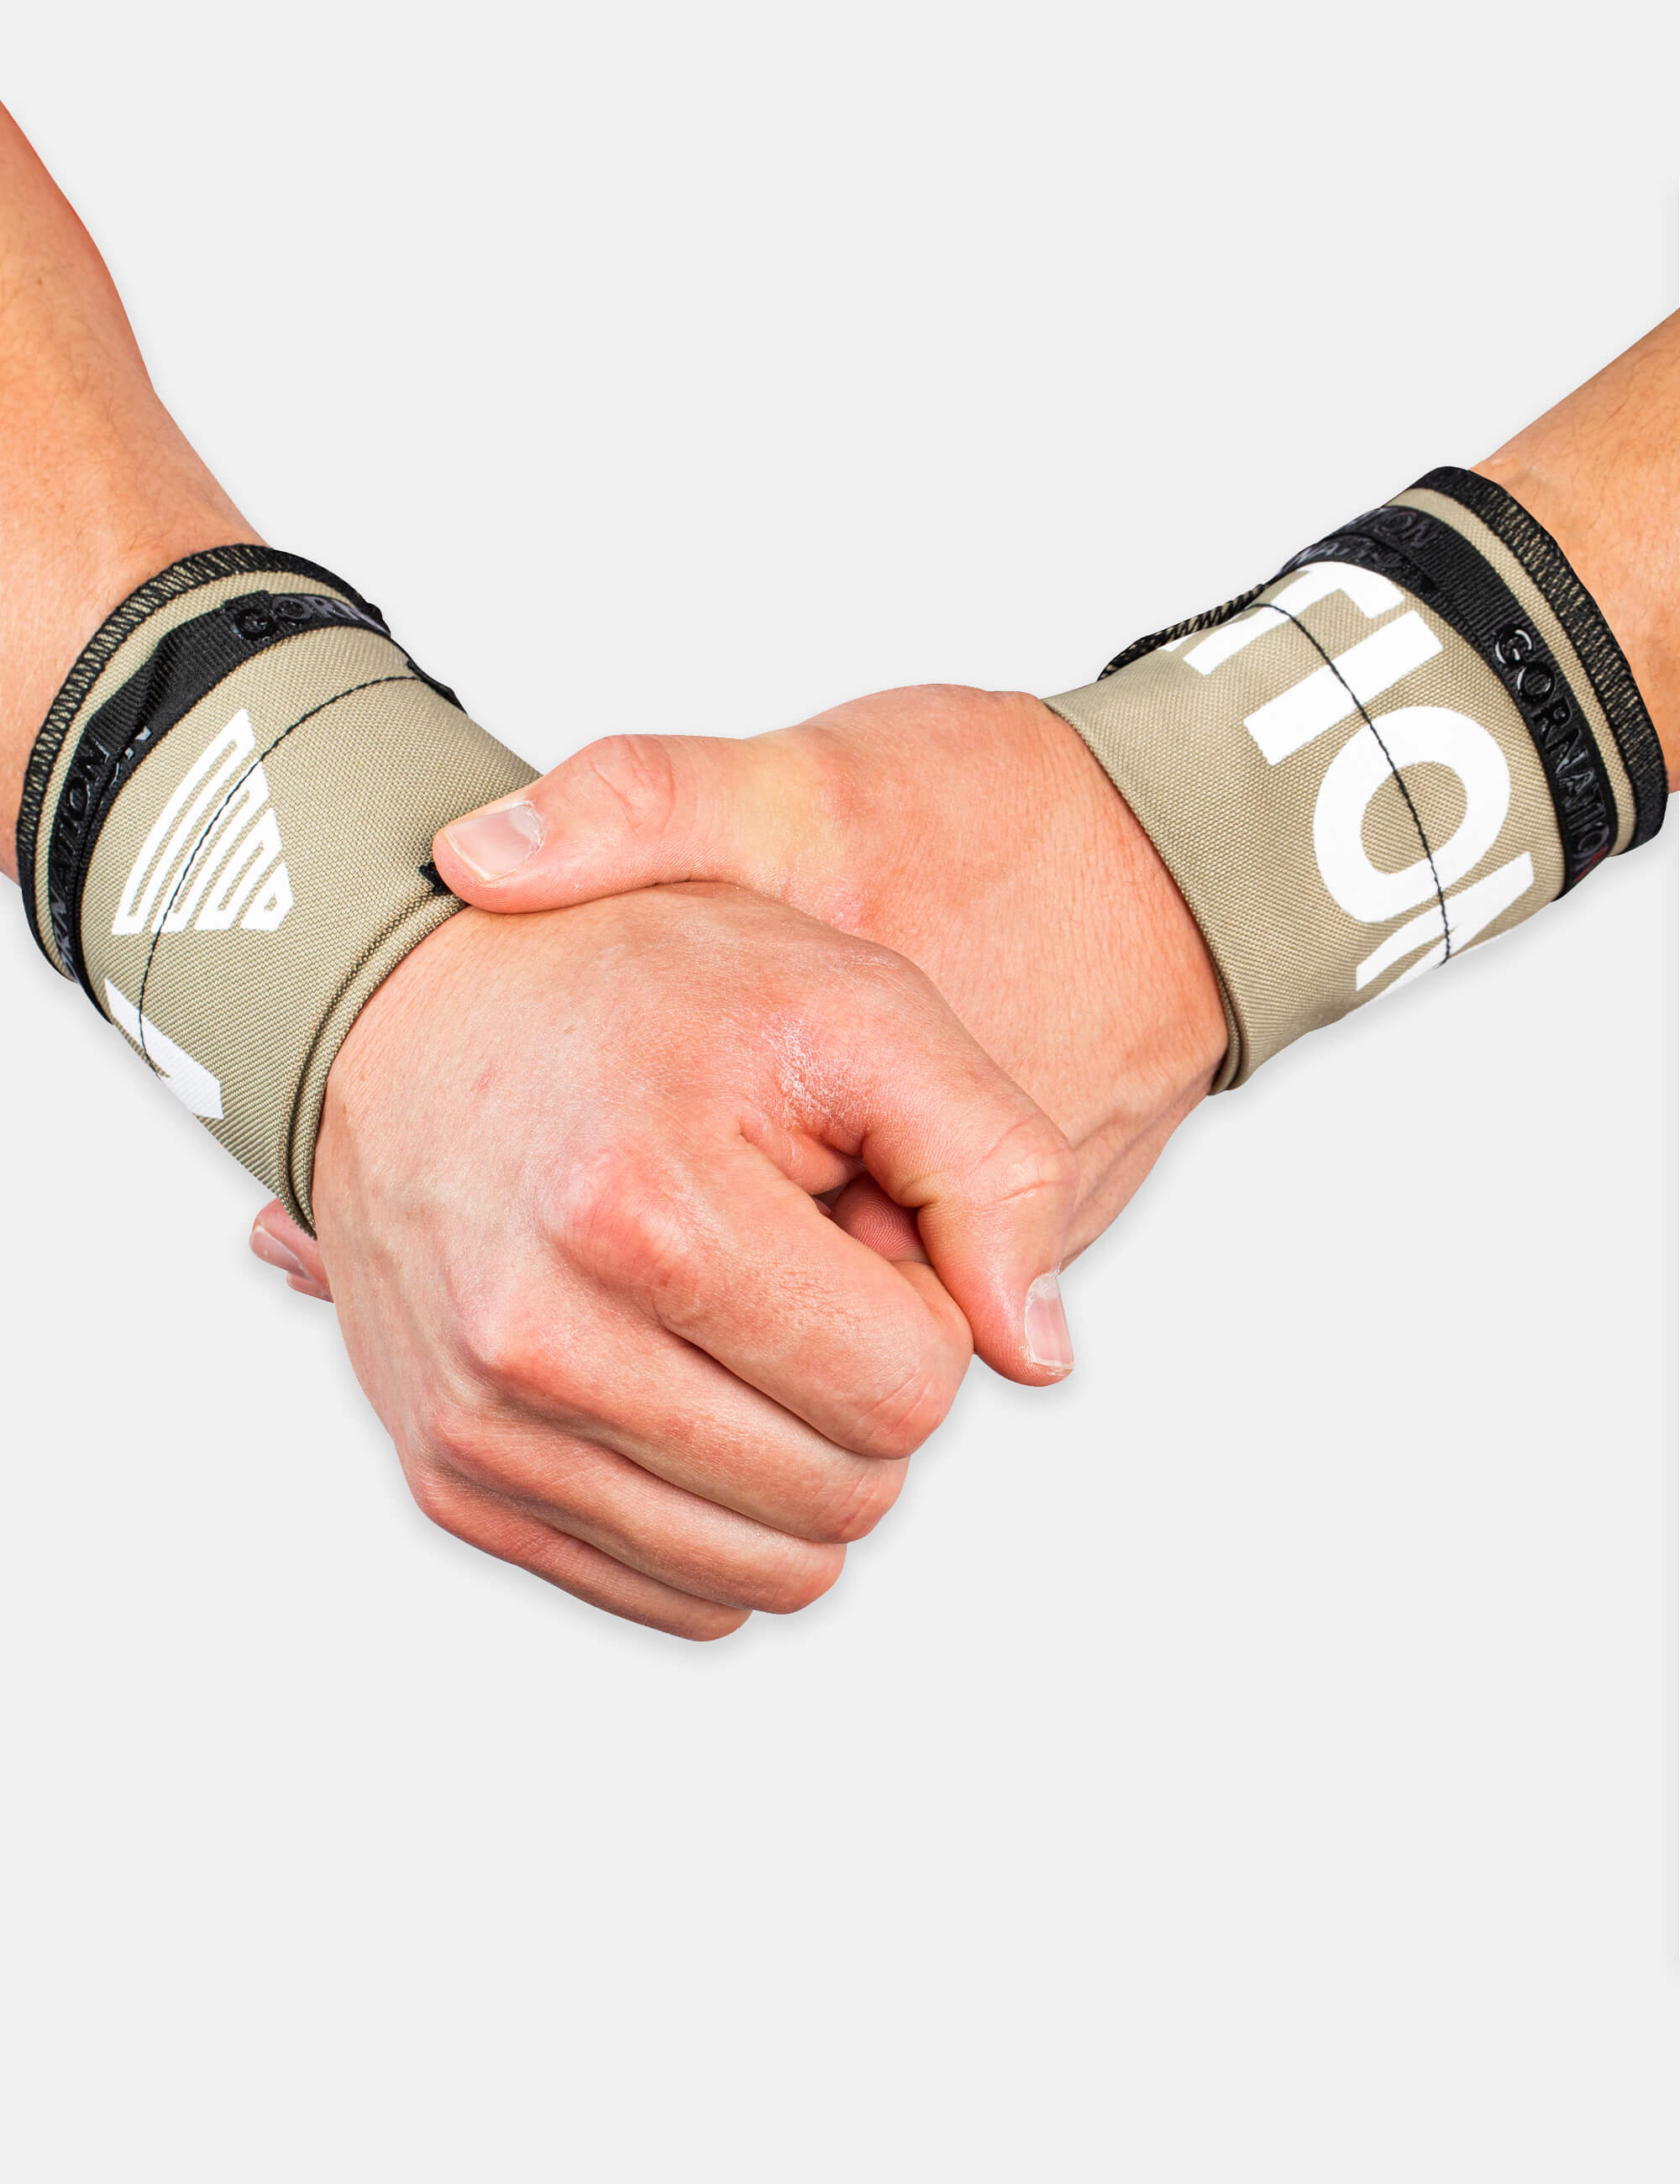 Olive Gornation Wrist wraps with tight fit, adjustable wristband for wrist support and injury prevention